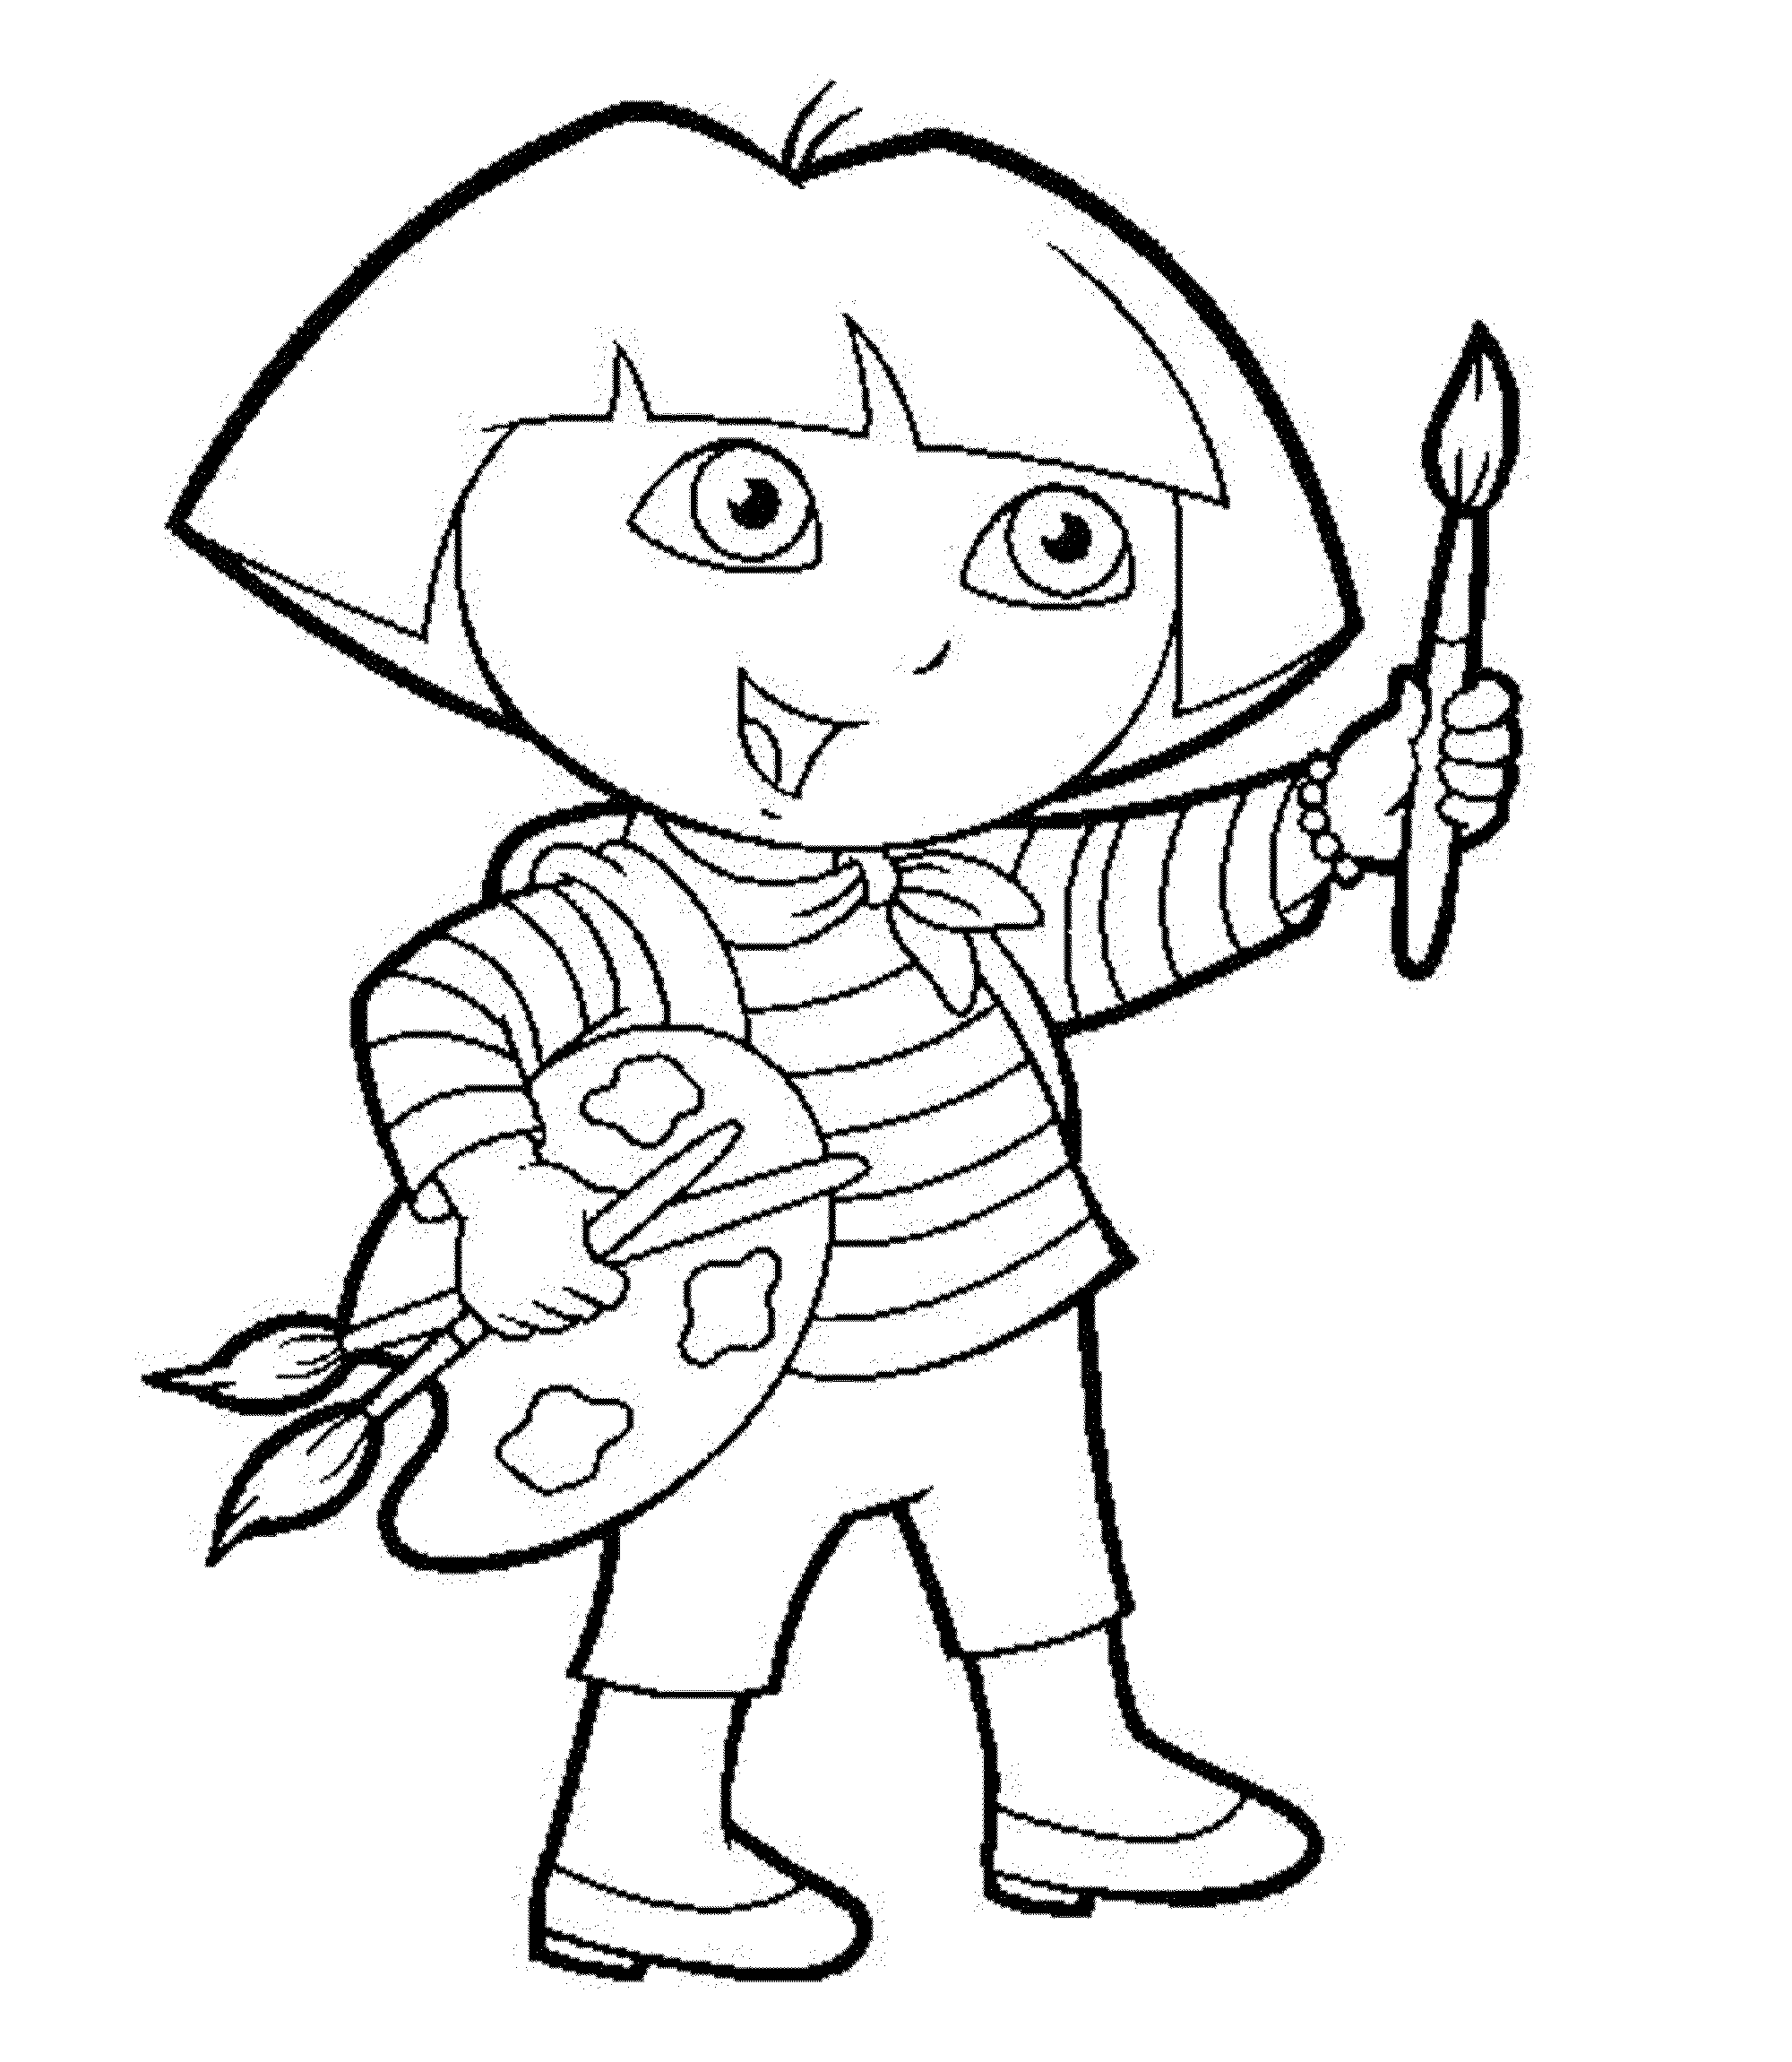 dora color pages print download dora coloring pages to learn new things color dora pages